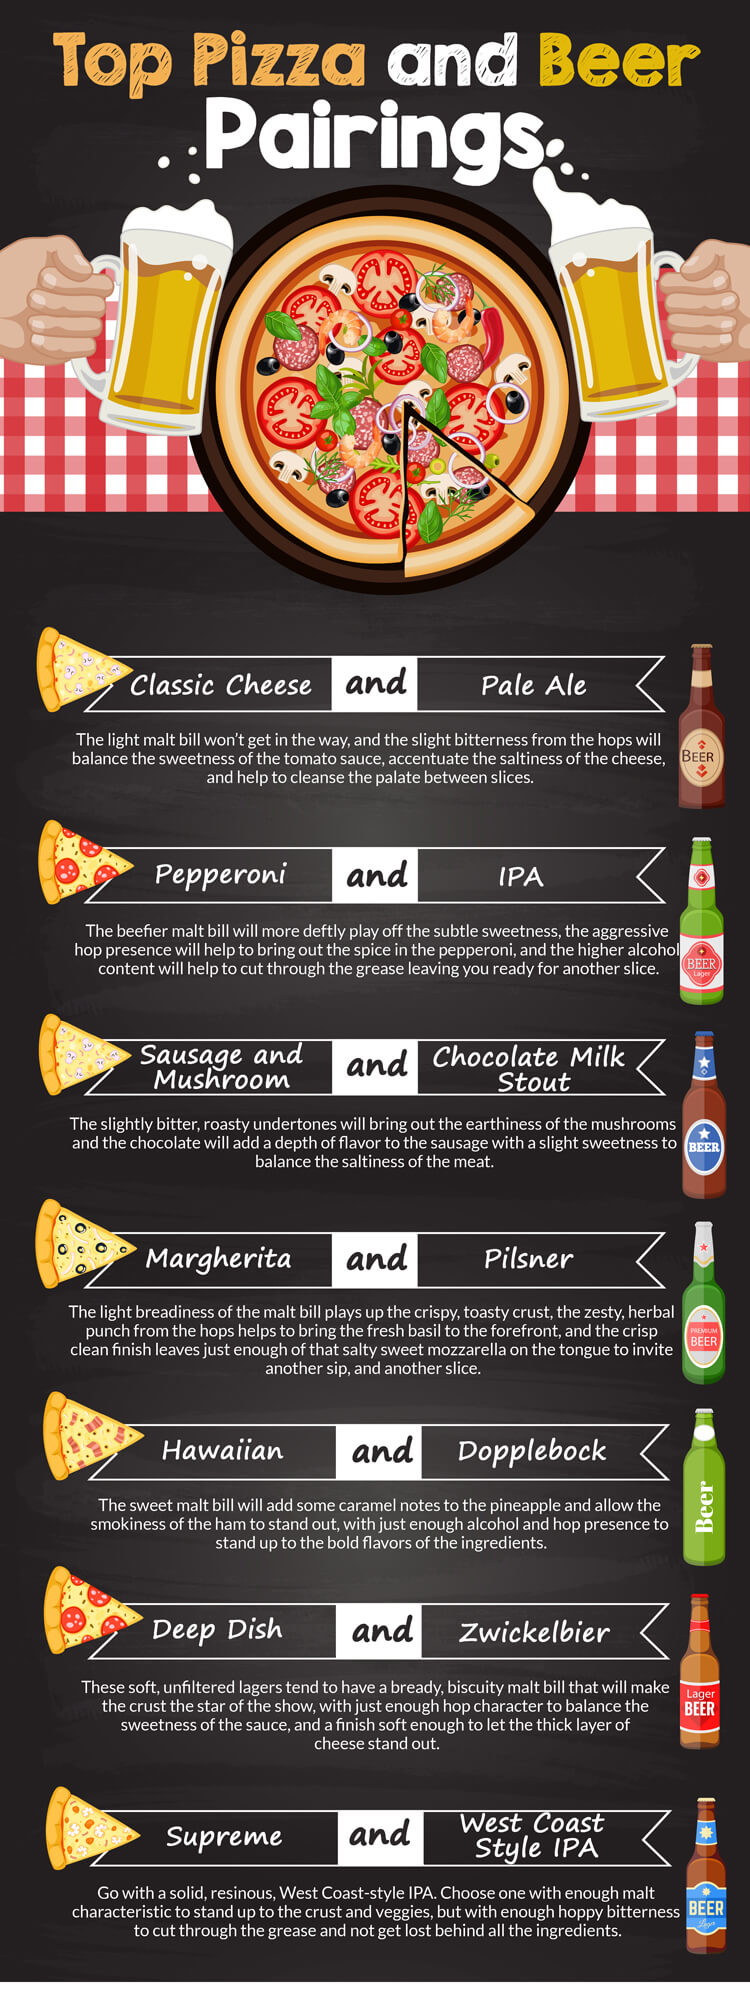 Top Pizza and Beer Pairings